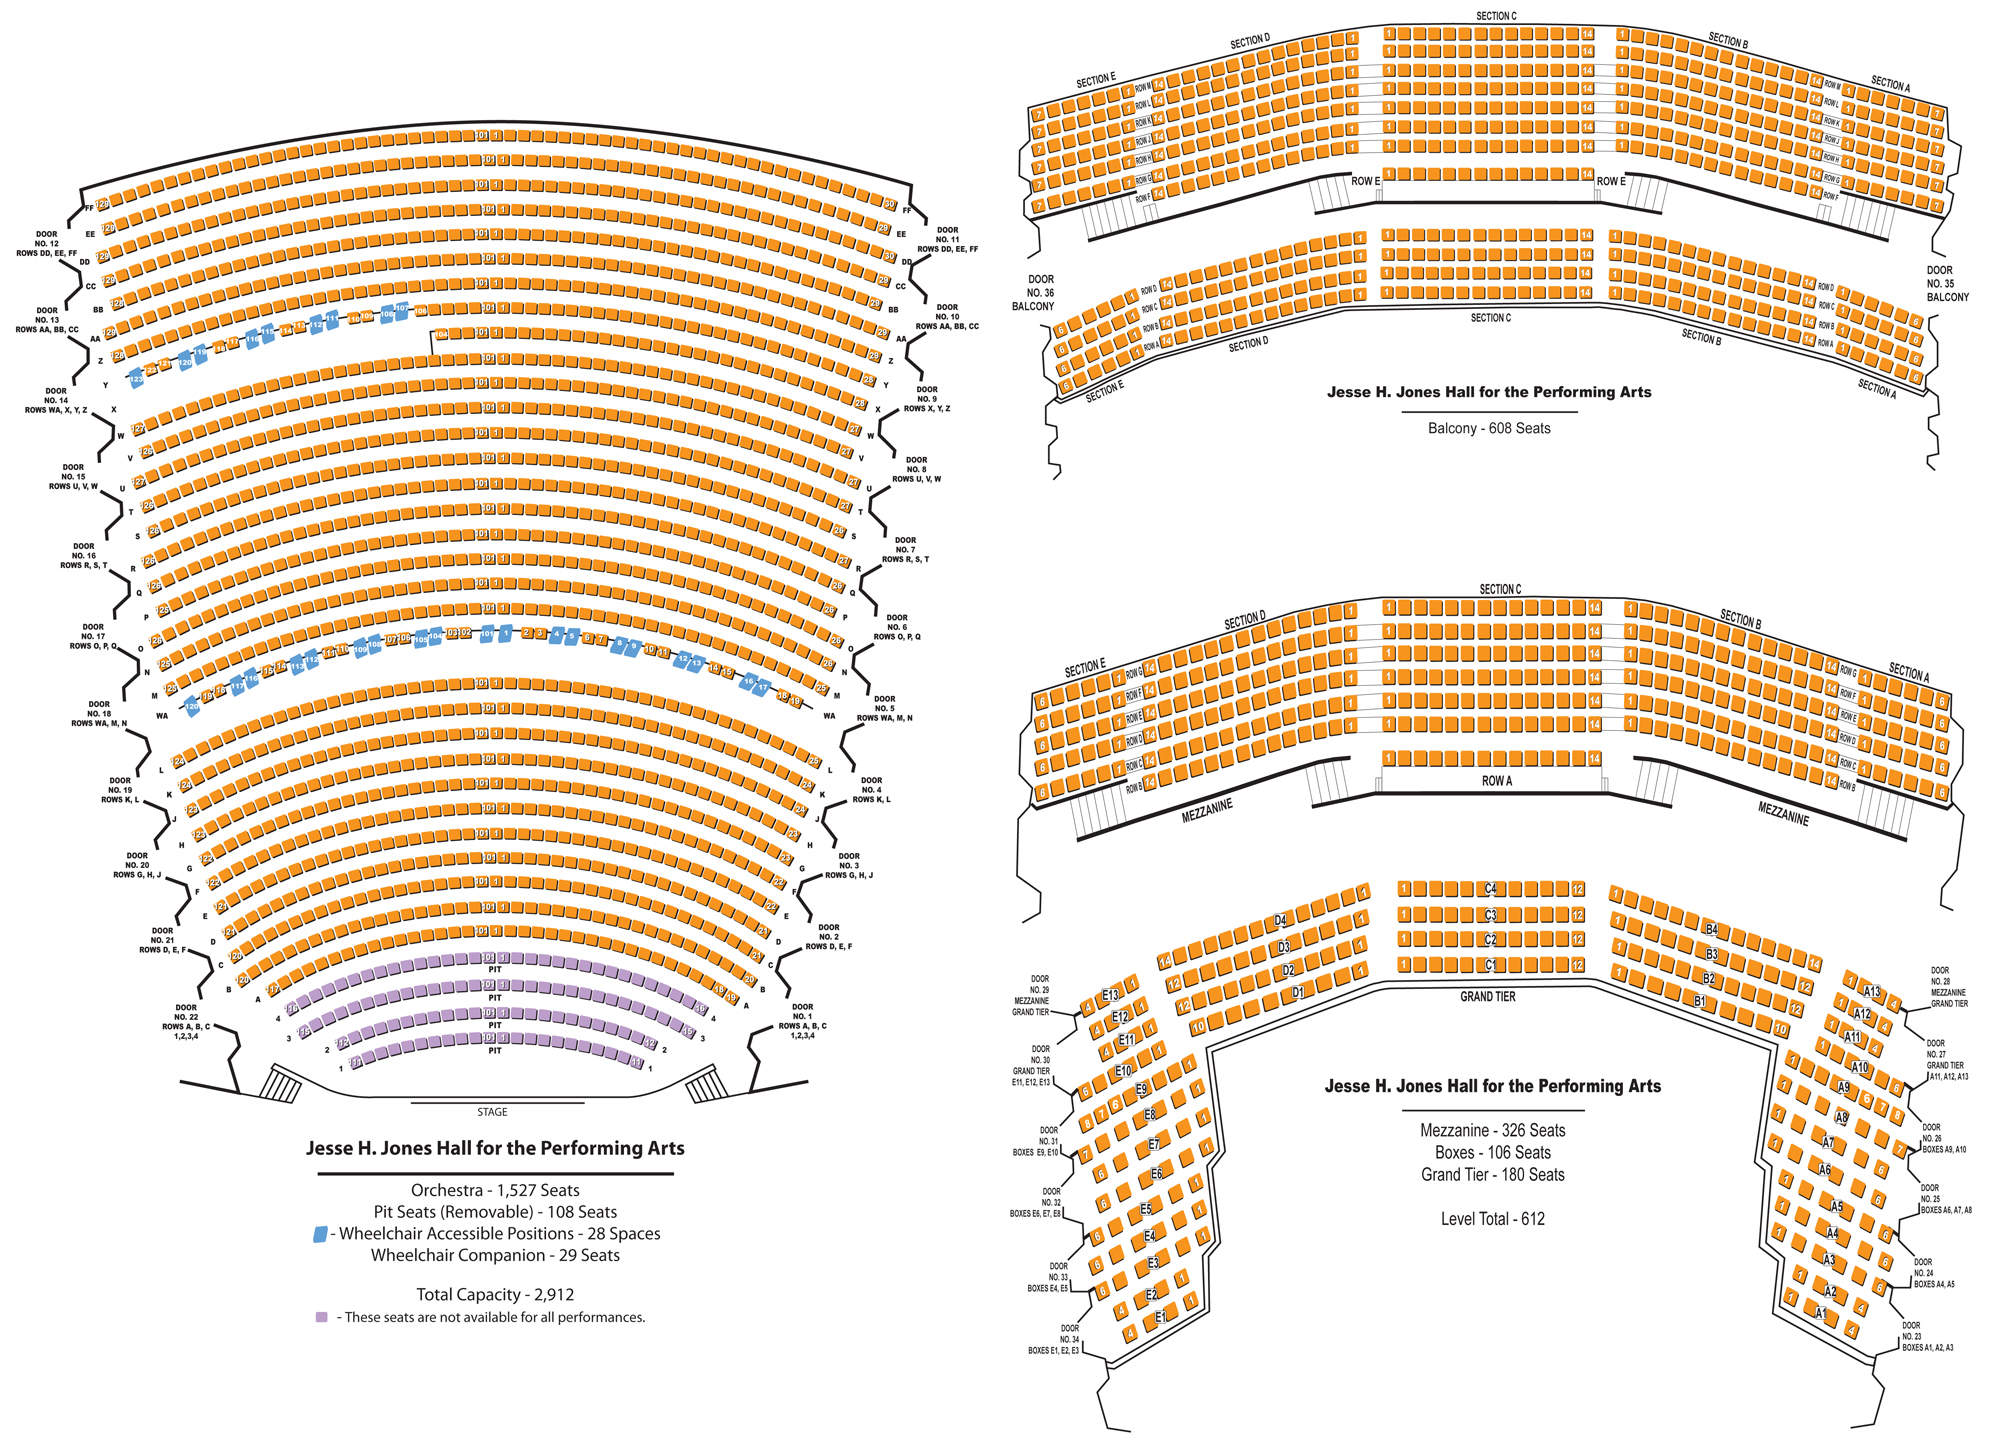 Jones hall seating also for the performing arts houston tickets schedule rh goldstar